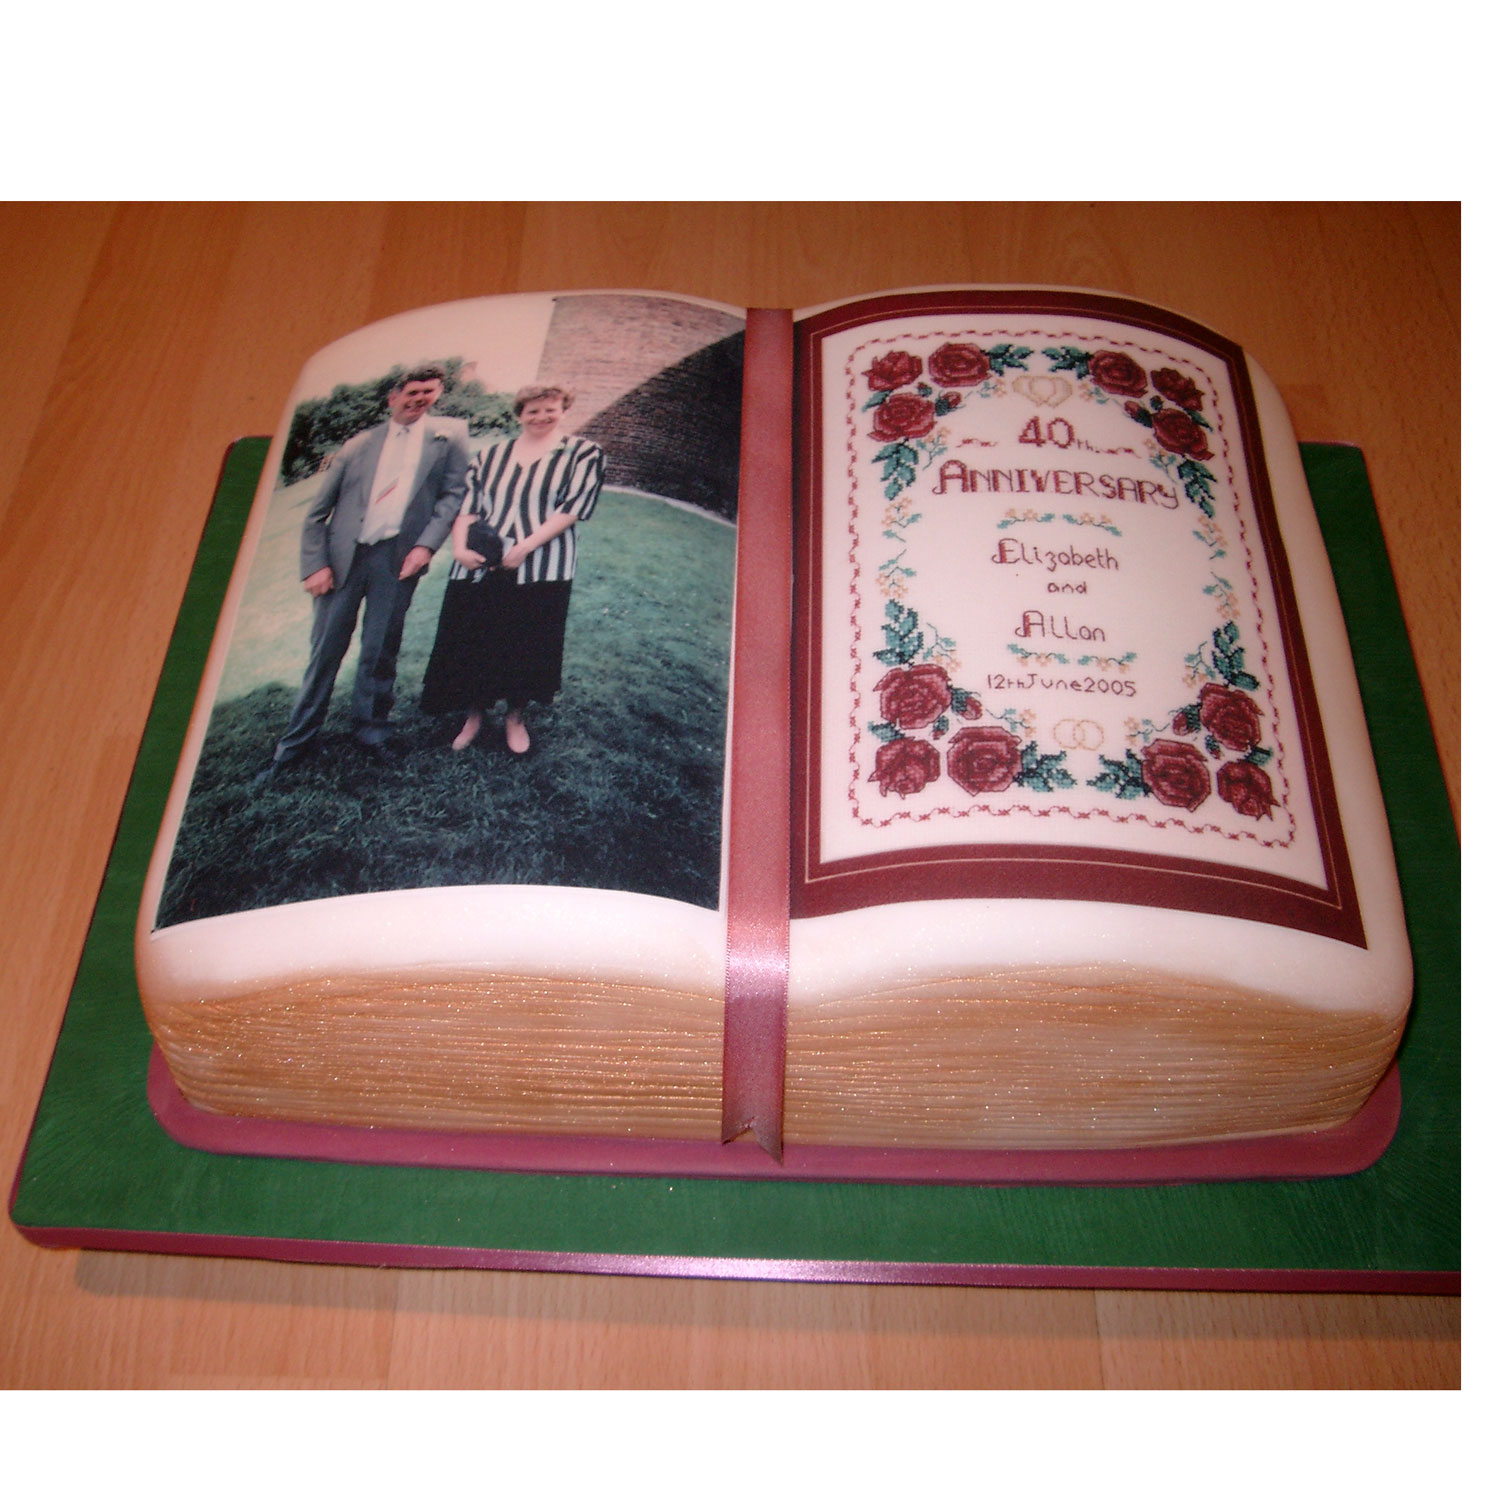 Book Shaped Cake with Edible Images